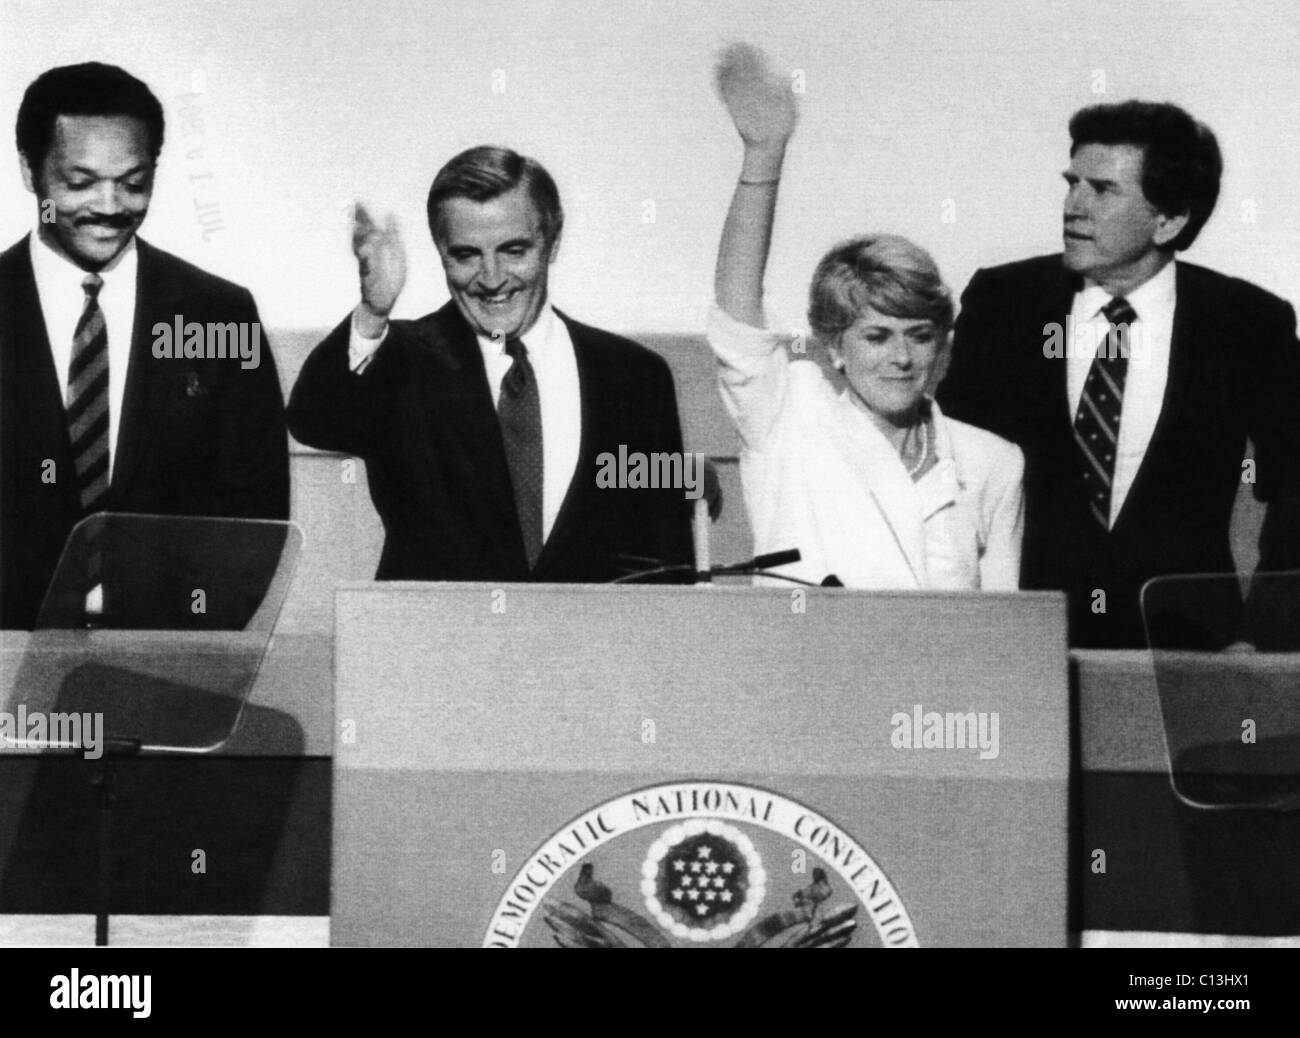 US Elections. From left: Reverend Jesse Jackson, Democratic presidential candidate Walter Mondale, US Congresswoman - Stock Image